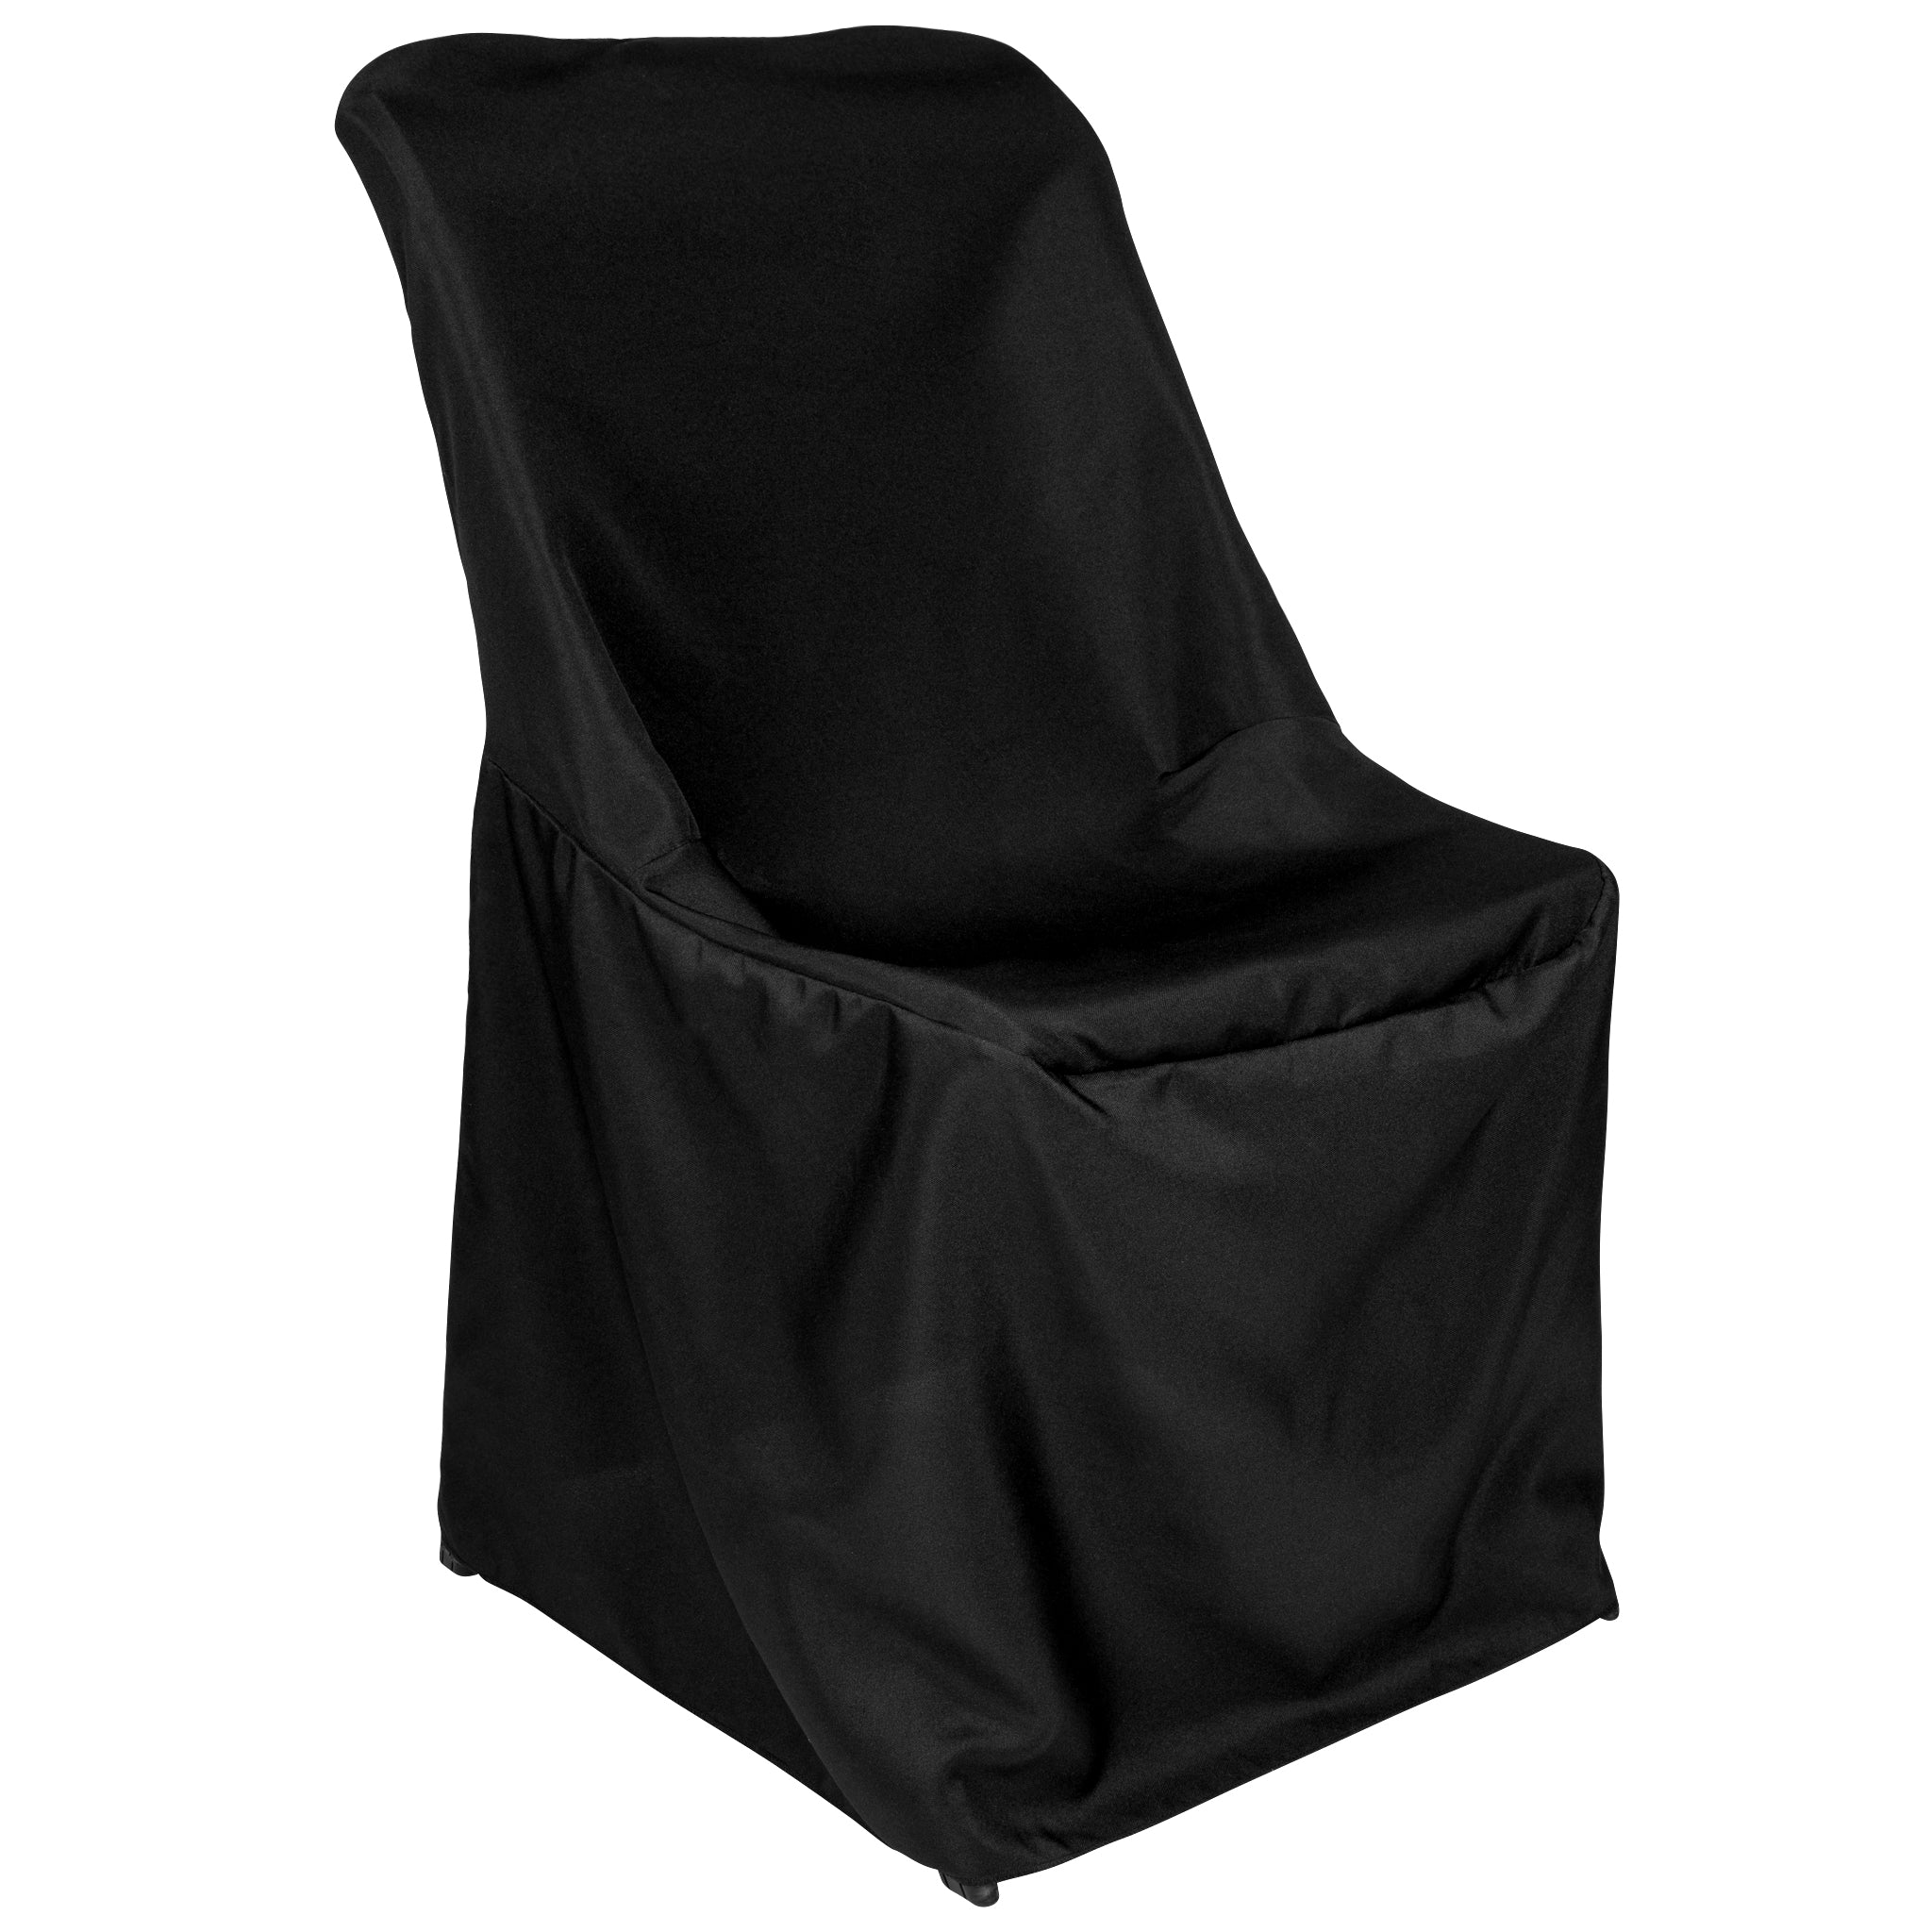 Pleasing Contemporary Lifetime Folding Chair Cover Black At Cv Linens Ocoug Best Dining Table And Chair Ideas Images Ocougorg